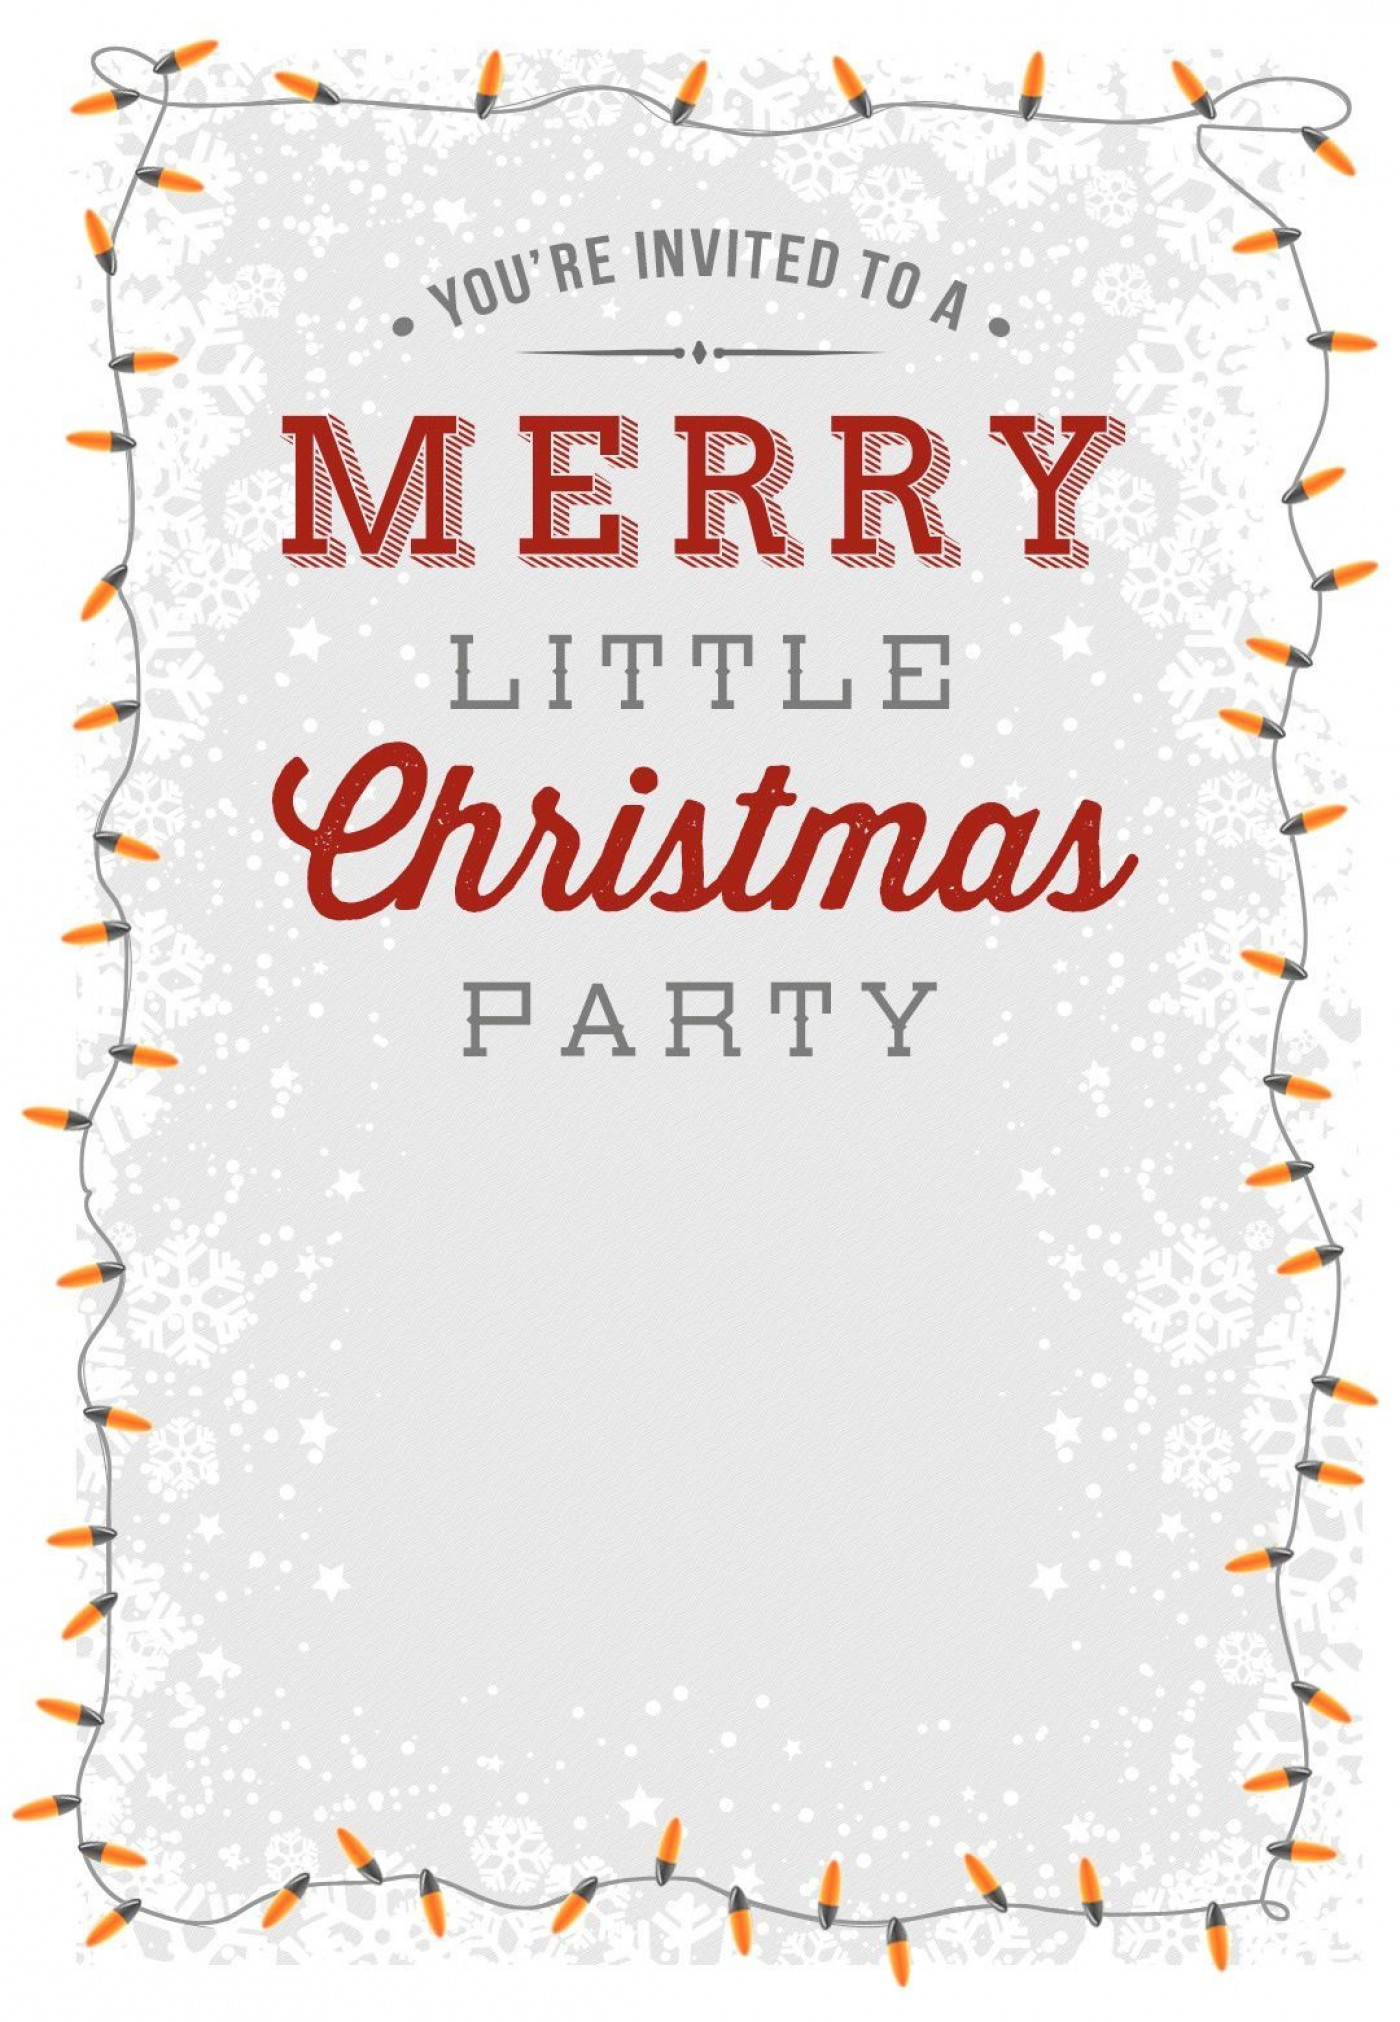 006 Fascinating Christma Party Invitation Template Idea  Holiday Download Free Psd1400